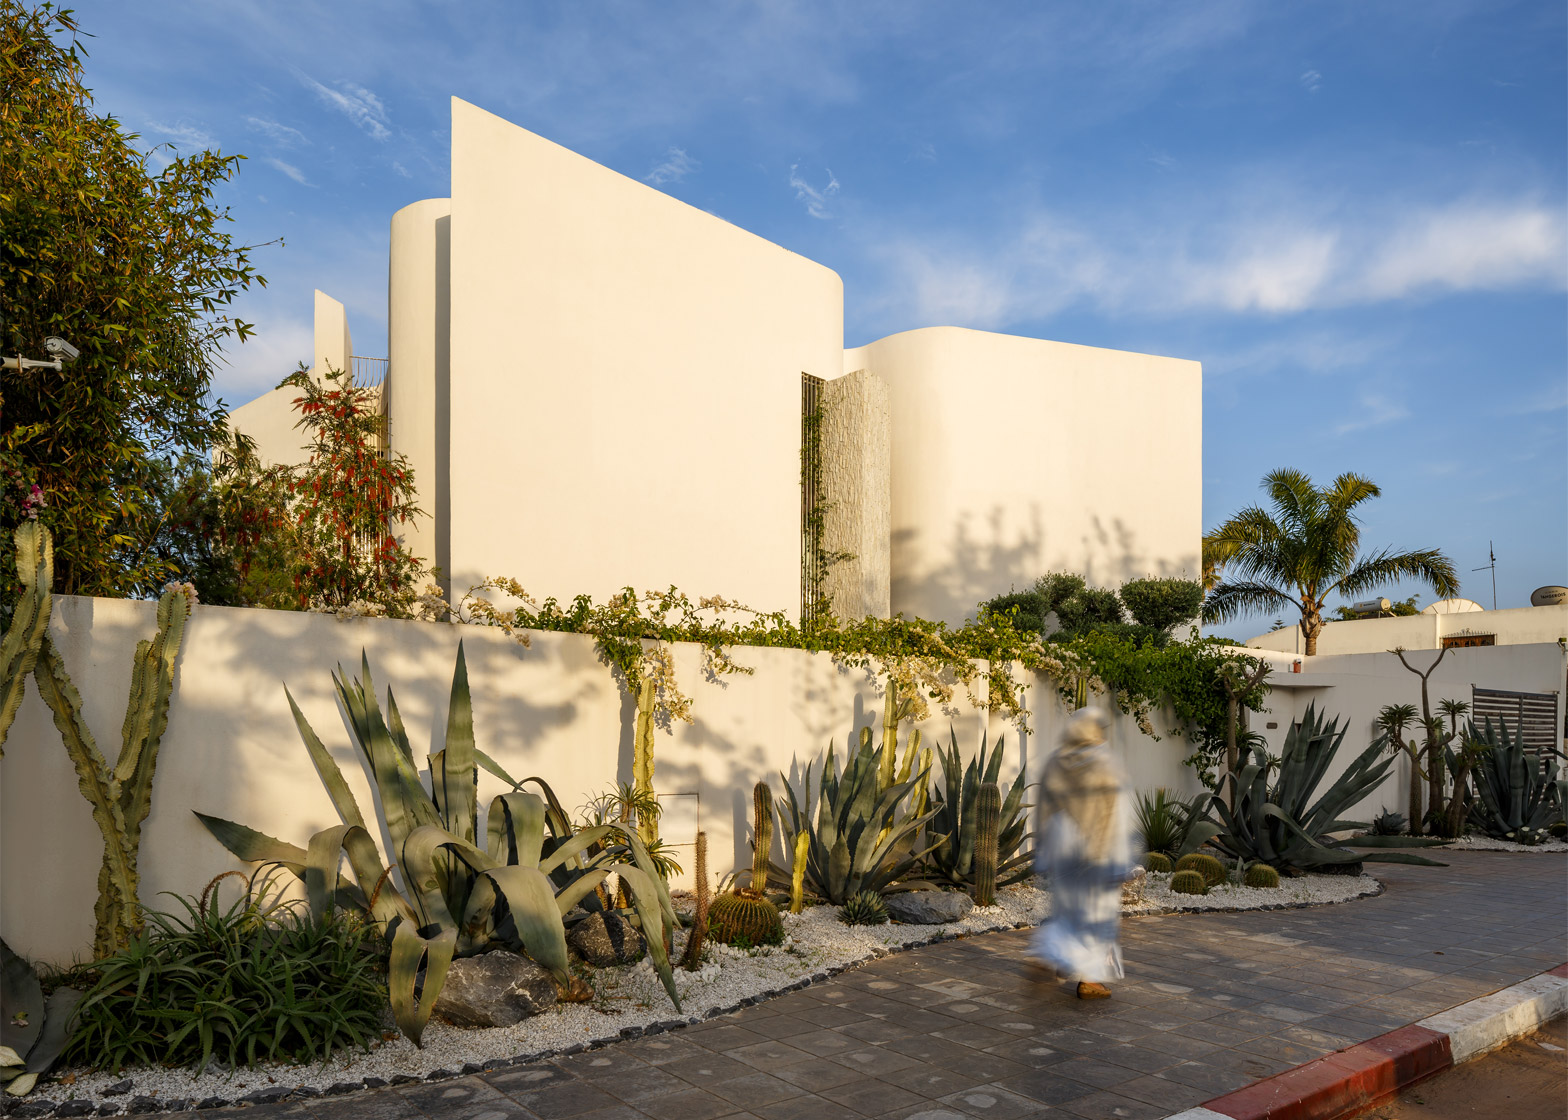 Mohamed Amine Siana combines flat planes and wavy walls at Villa Z in Casablanca